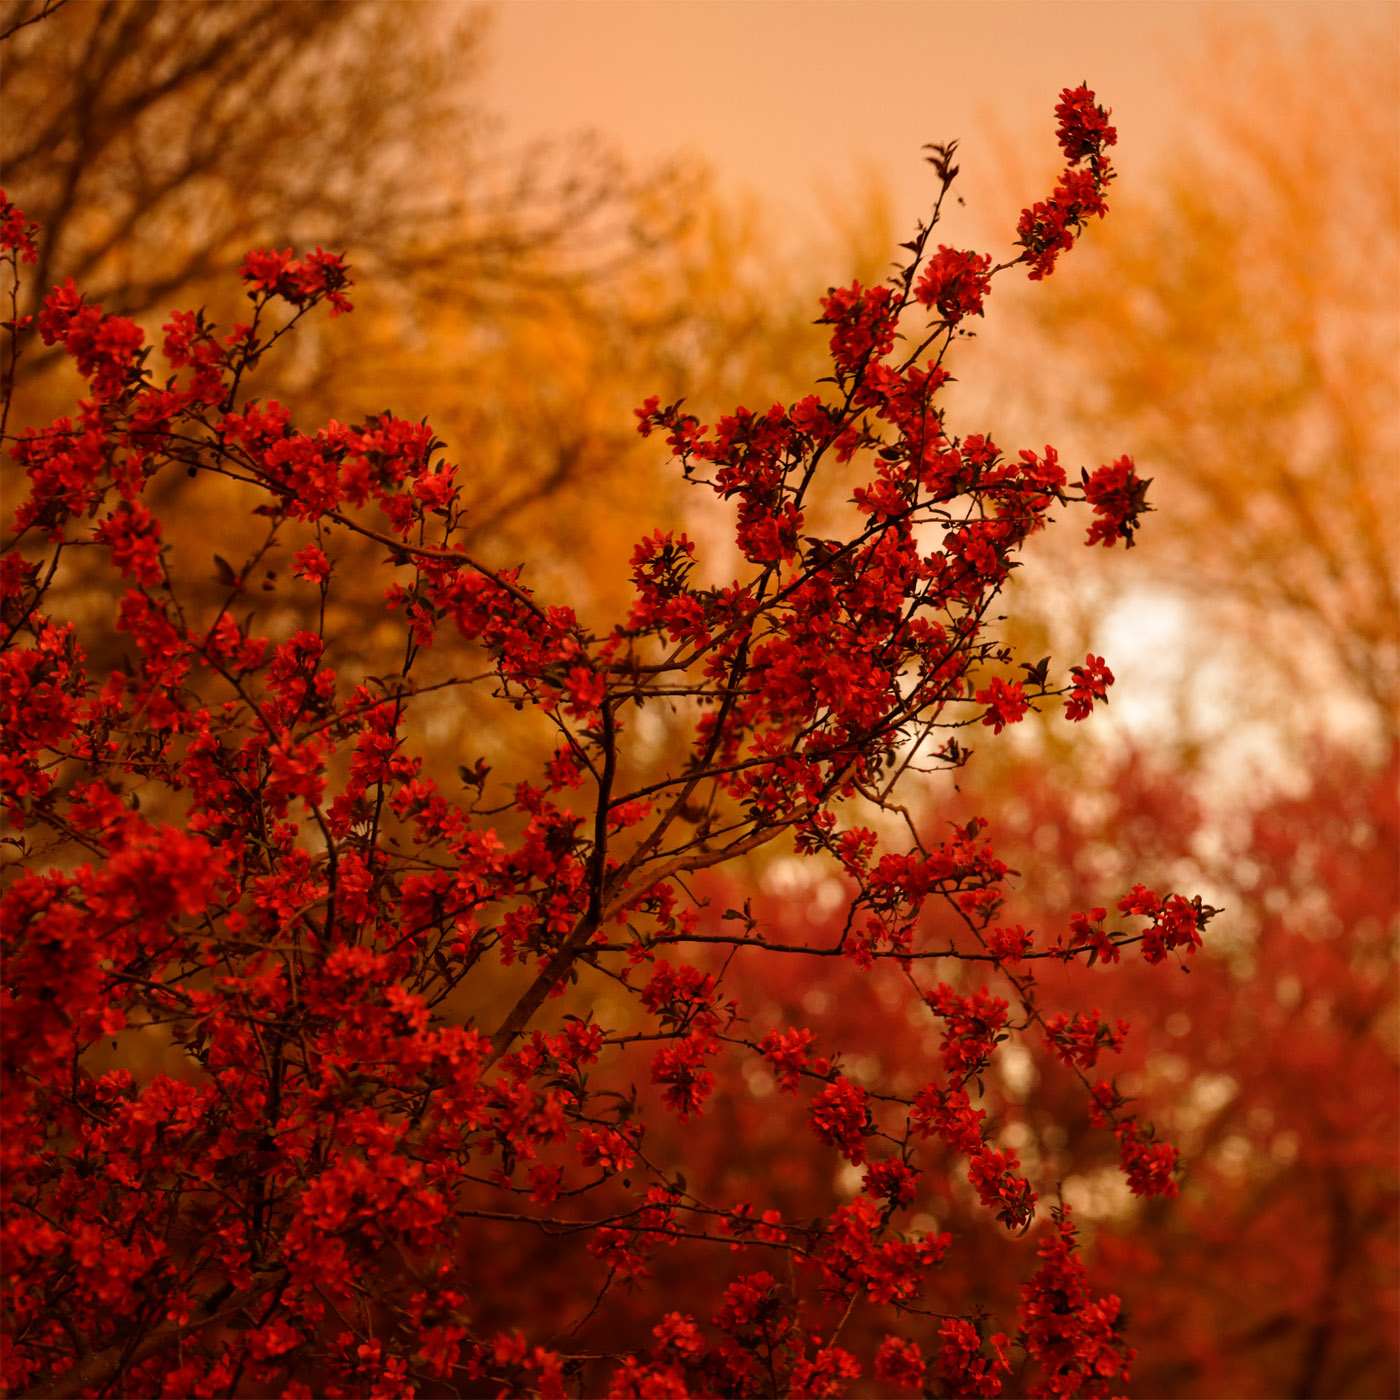 Crabapple Branch in Evening Light